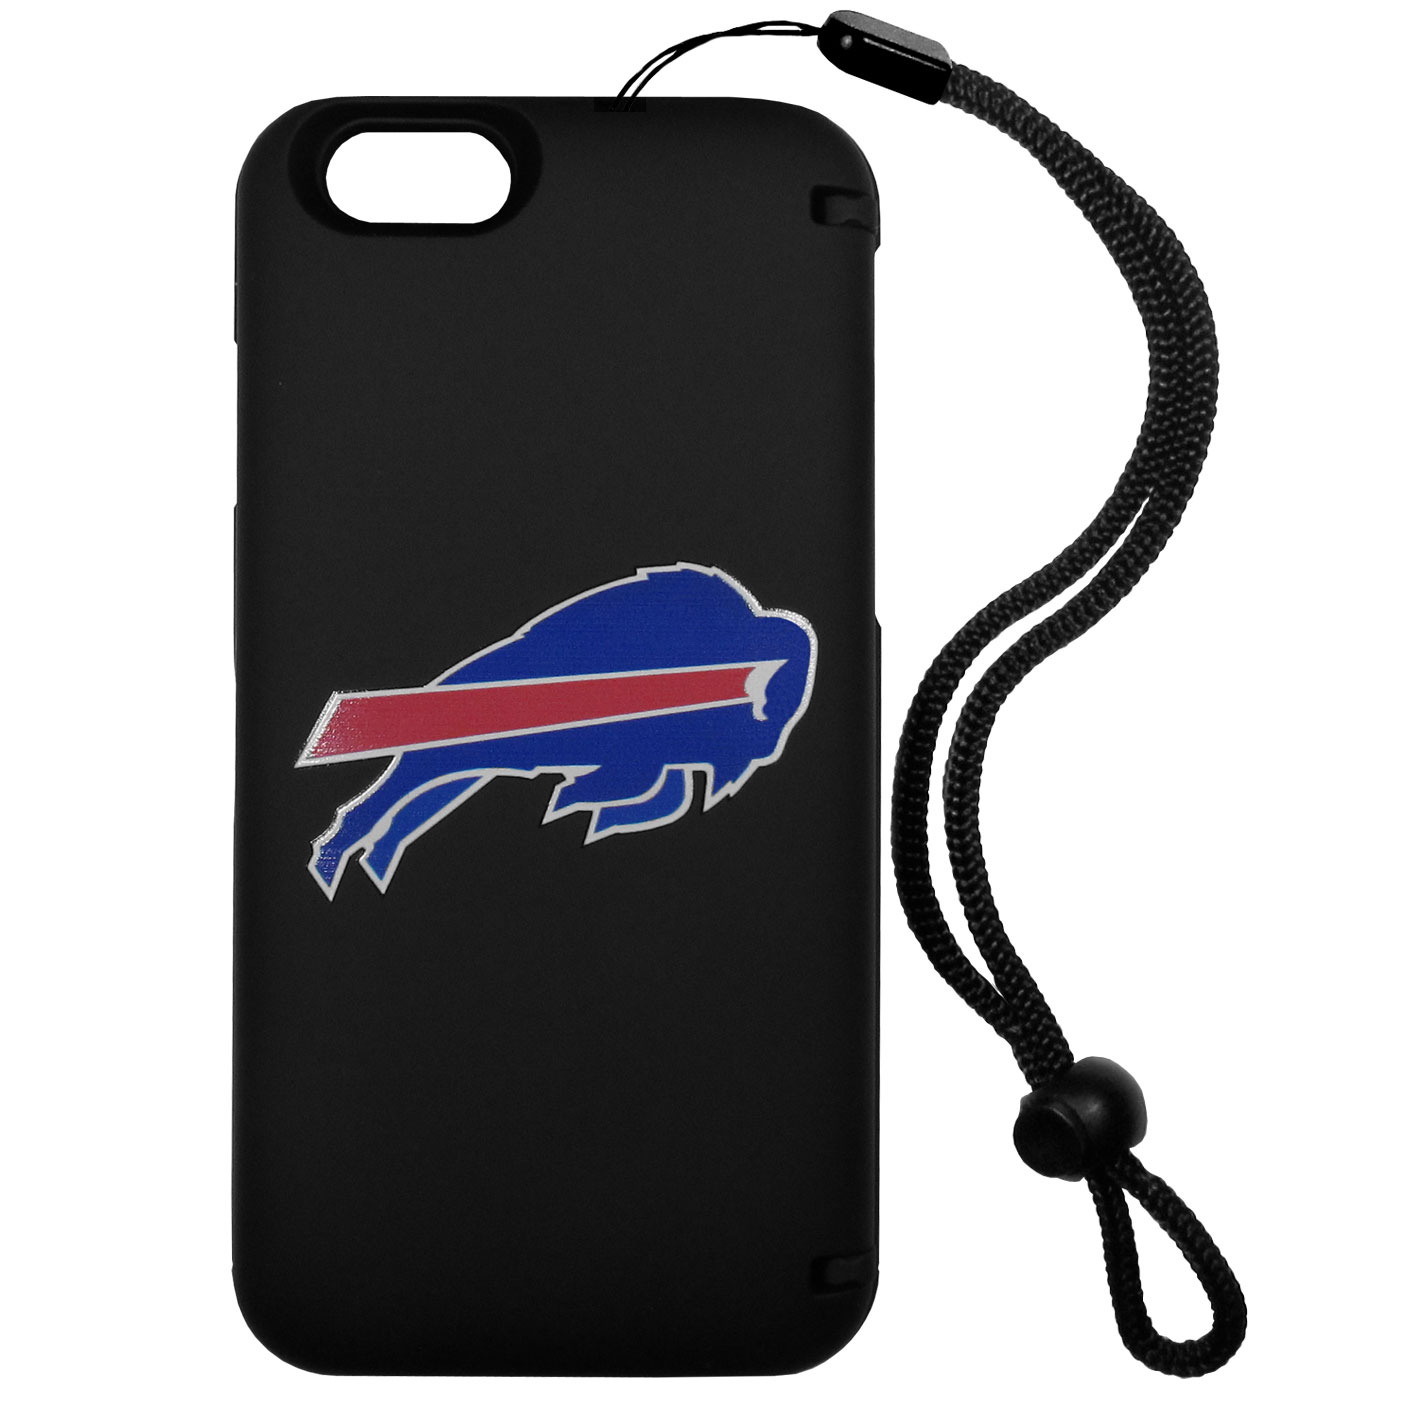 Buffalo Bills iPhone 6 Everything Case - This case really does have everything but the kitchen sink! The hidden compartment lets you keep your cards, money and tickets to the big game safe and secure and has a compact mirror so you can make sure your game face is ready to go. It also comes with a kickstand to make chatting and watching videos a breeze. The wrist strap allows you to travel with ease with your everything case. If that's not enough, it also comes with the Buffalo Bills logo printed in expert detail on the front.